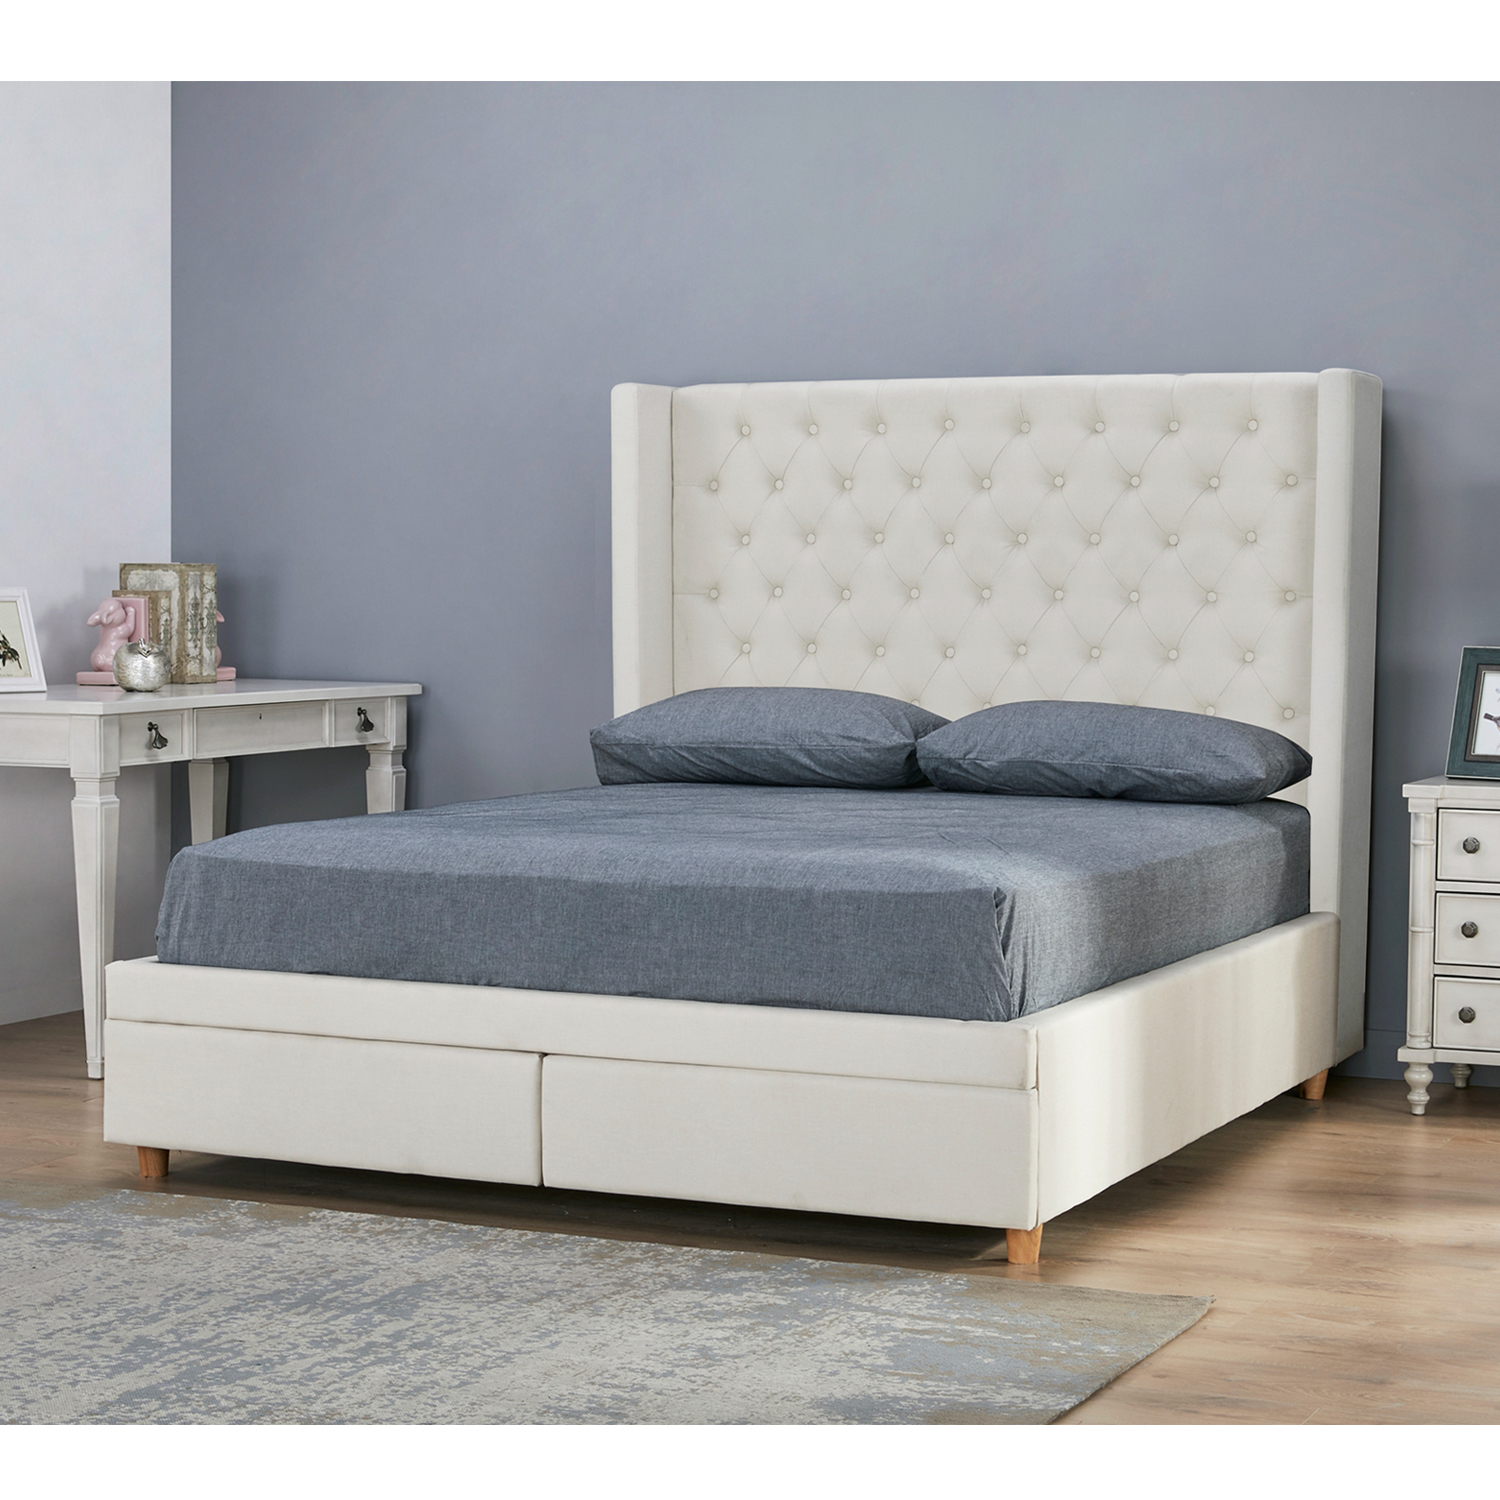 Furniture Source Philippines Appenzel Tufted Bed Frame Queen With 2 Drawers Off White